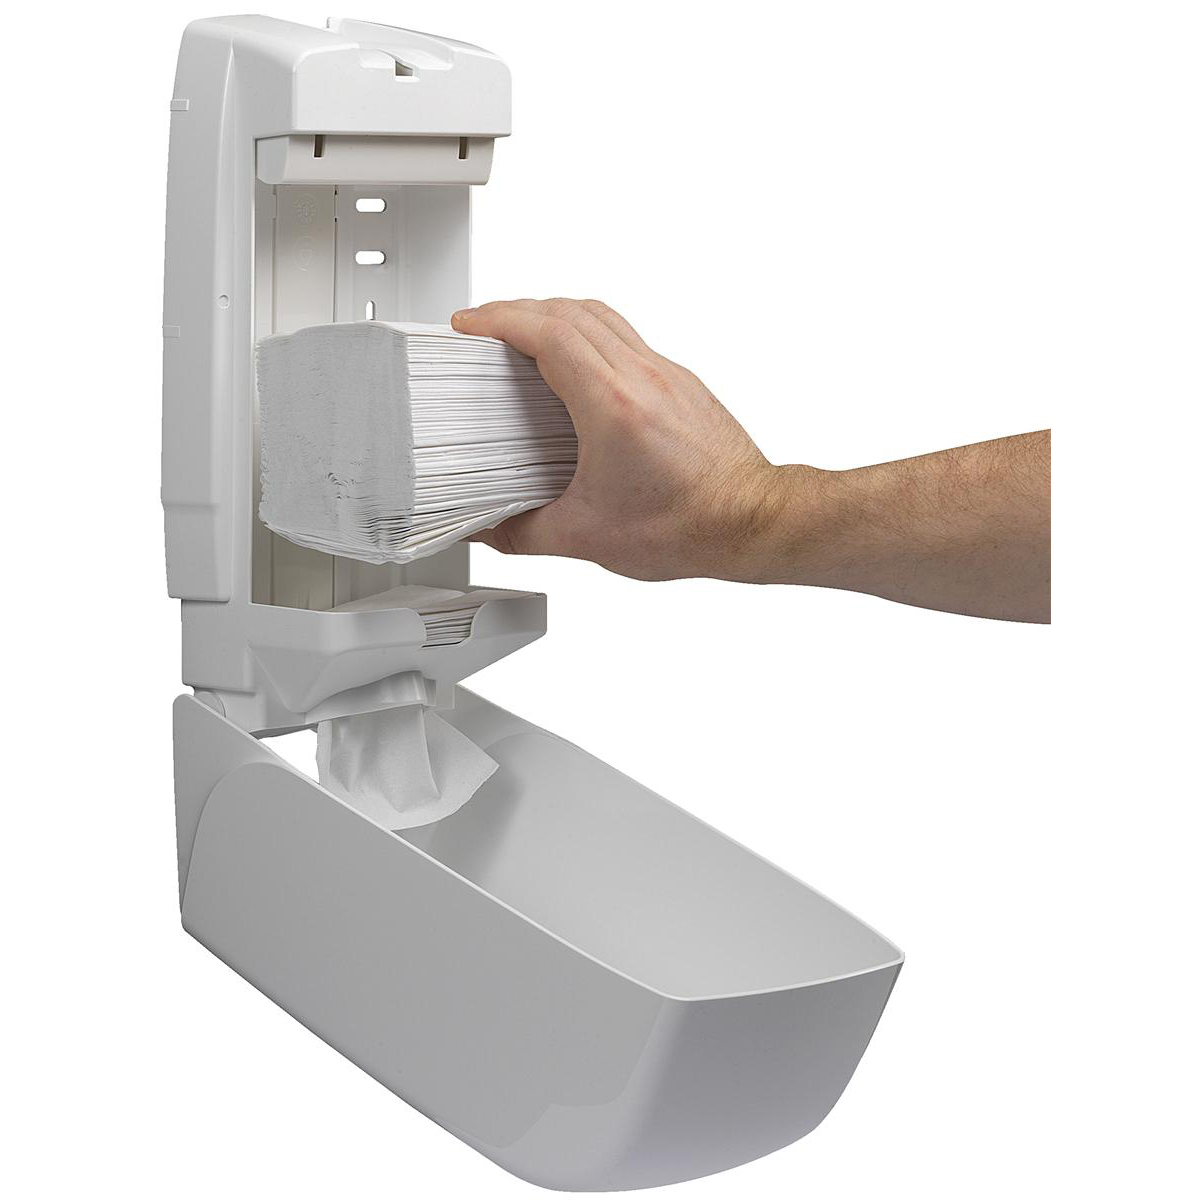 Kimberly-Clark AQUARIUS* Bulk Pack Toilet Tissue Dispenser W169xD123xH341mm White Ref 6946